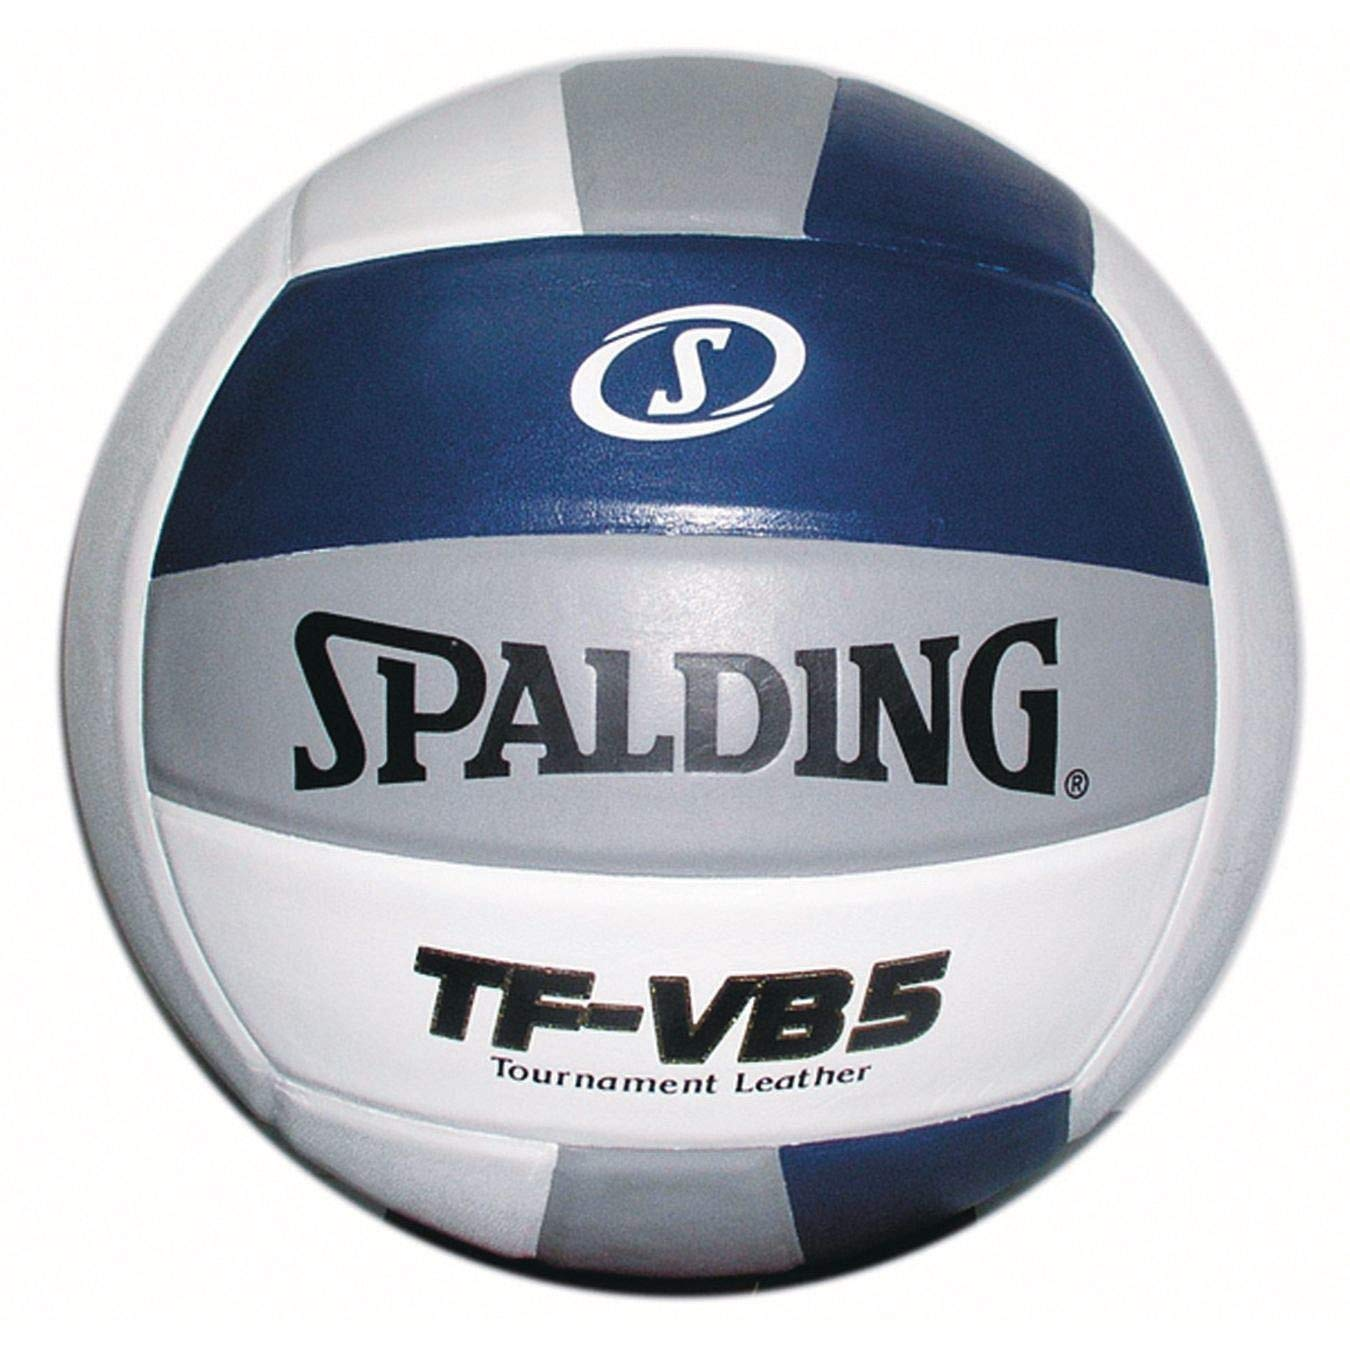 Spalding TF-VB5 NFHS Competition Volleyball (Navy/白い/銀)